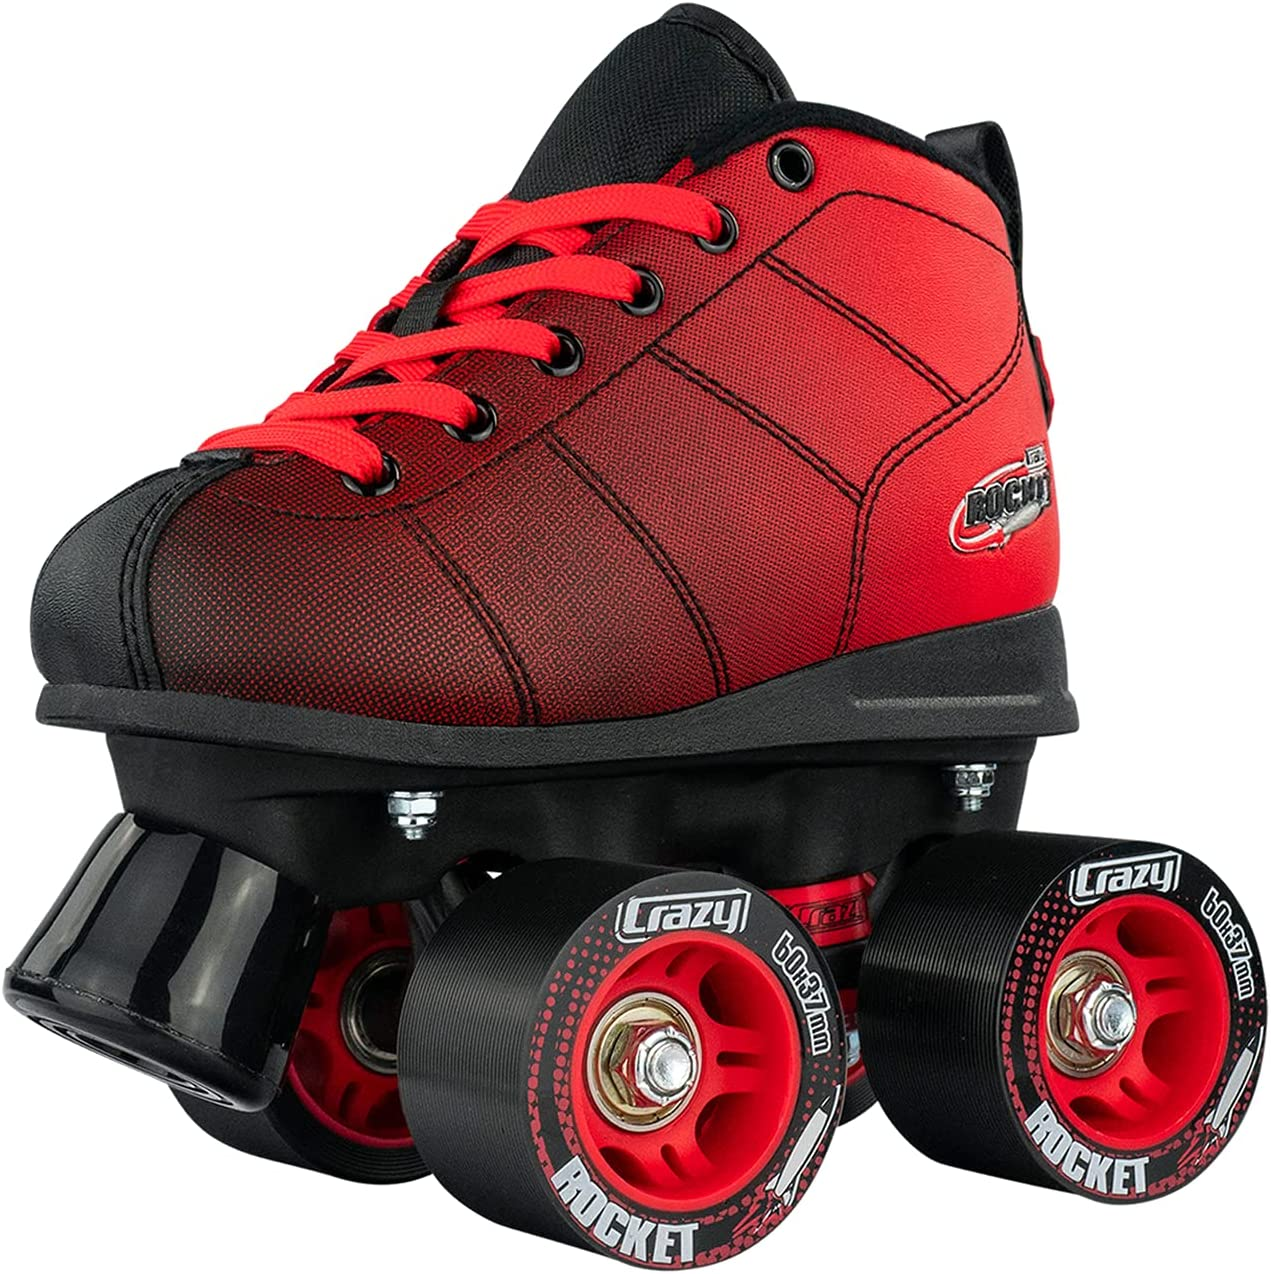 Crazy Skates Rocket Some reservation Roller for Girls Great Luxury goods Beg Boys and -